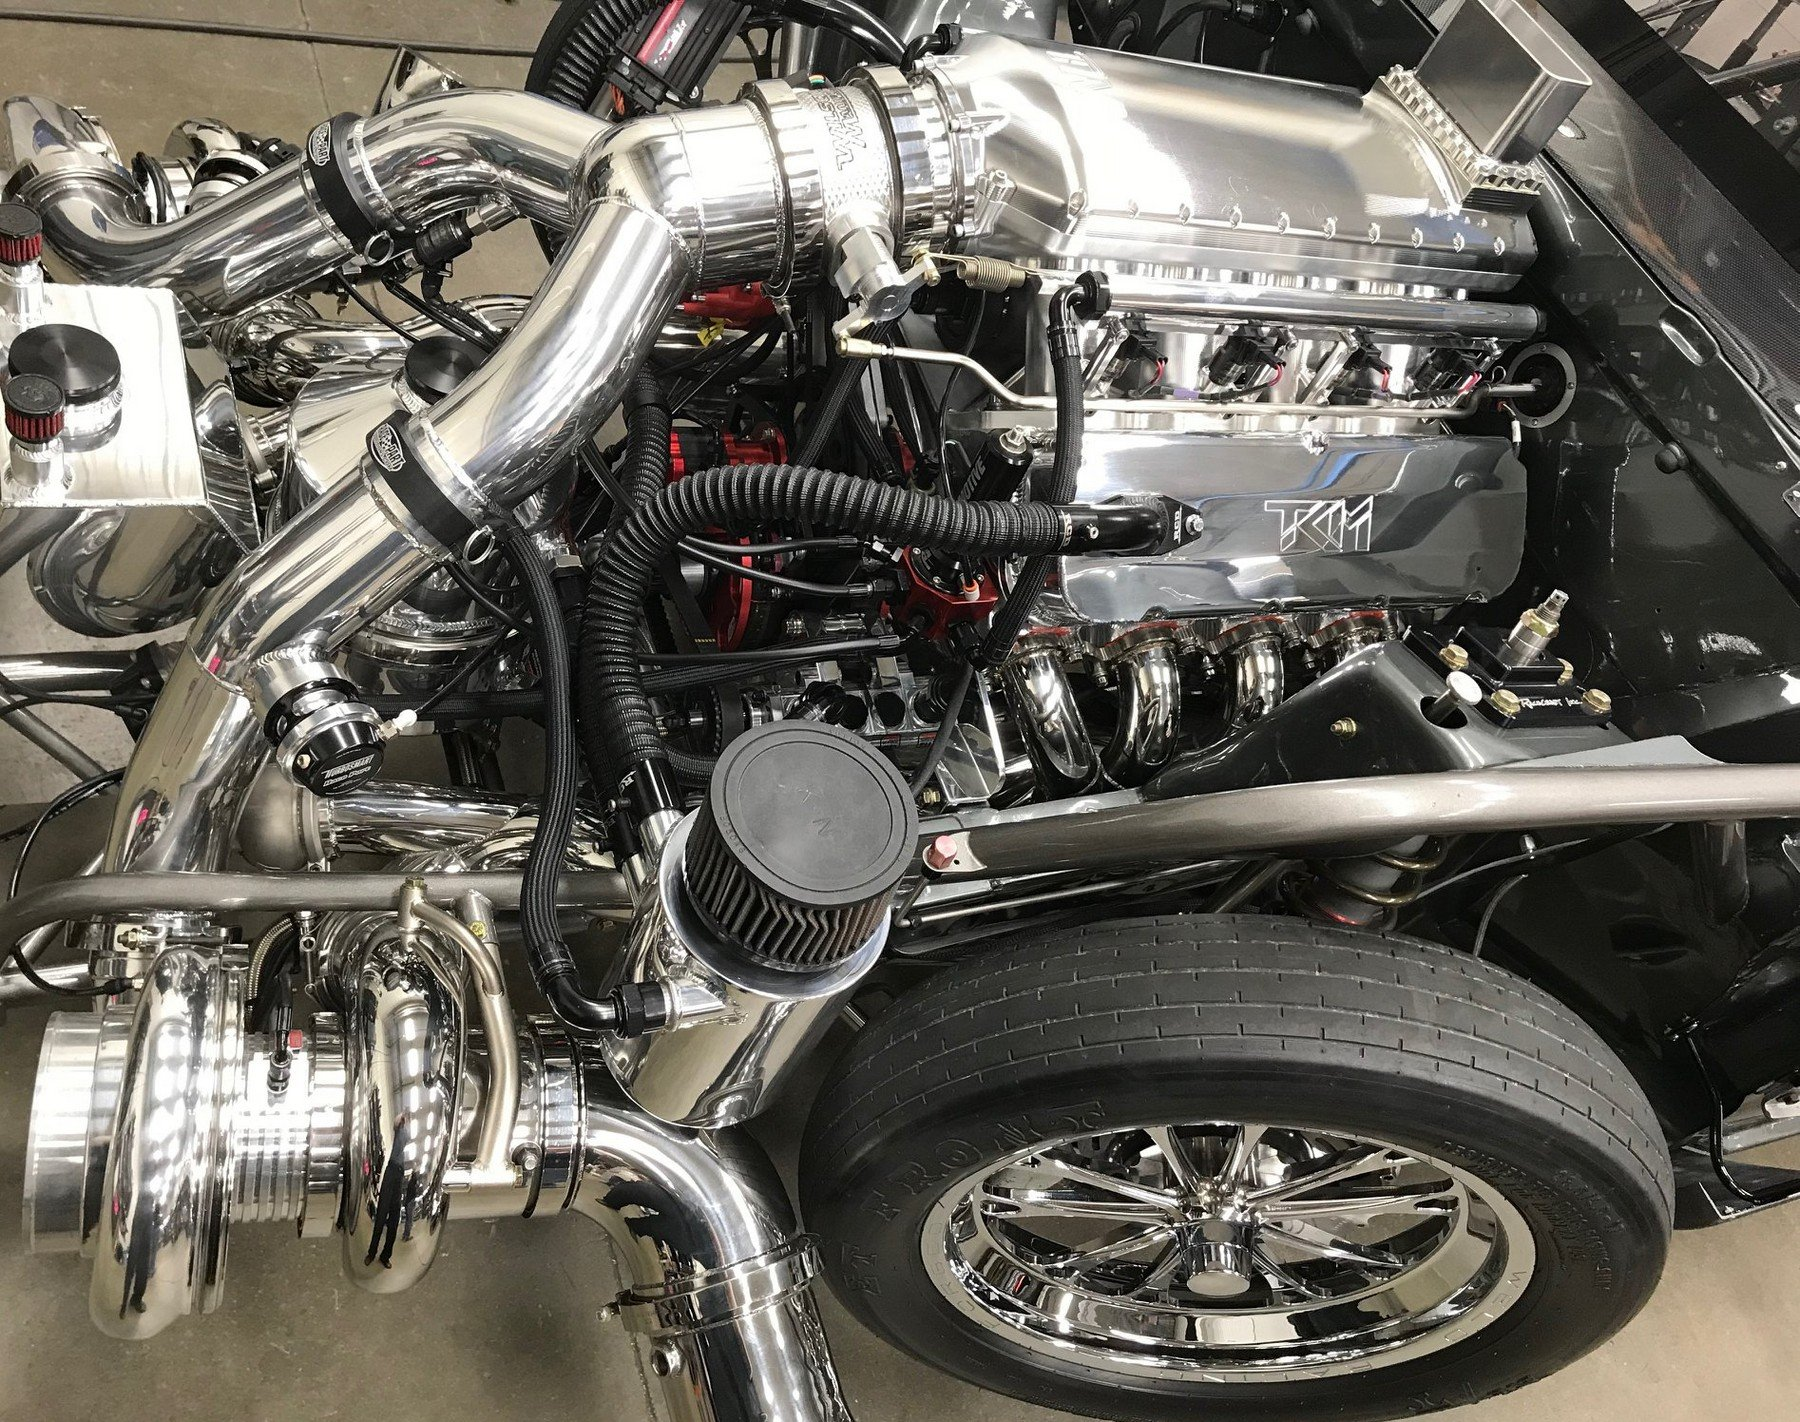 Double Trouble: Ziff Hudson Makes The Switch To Twin Turbos